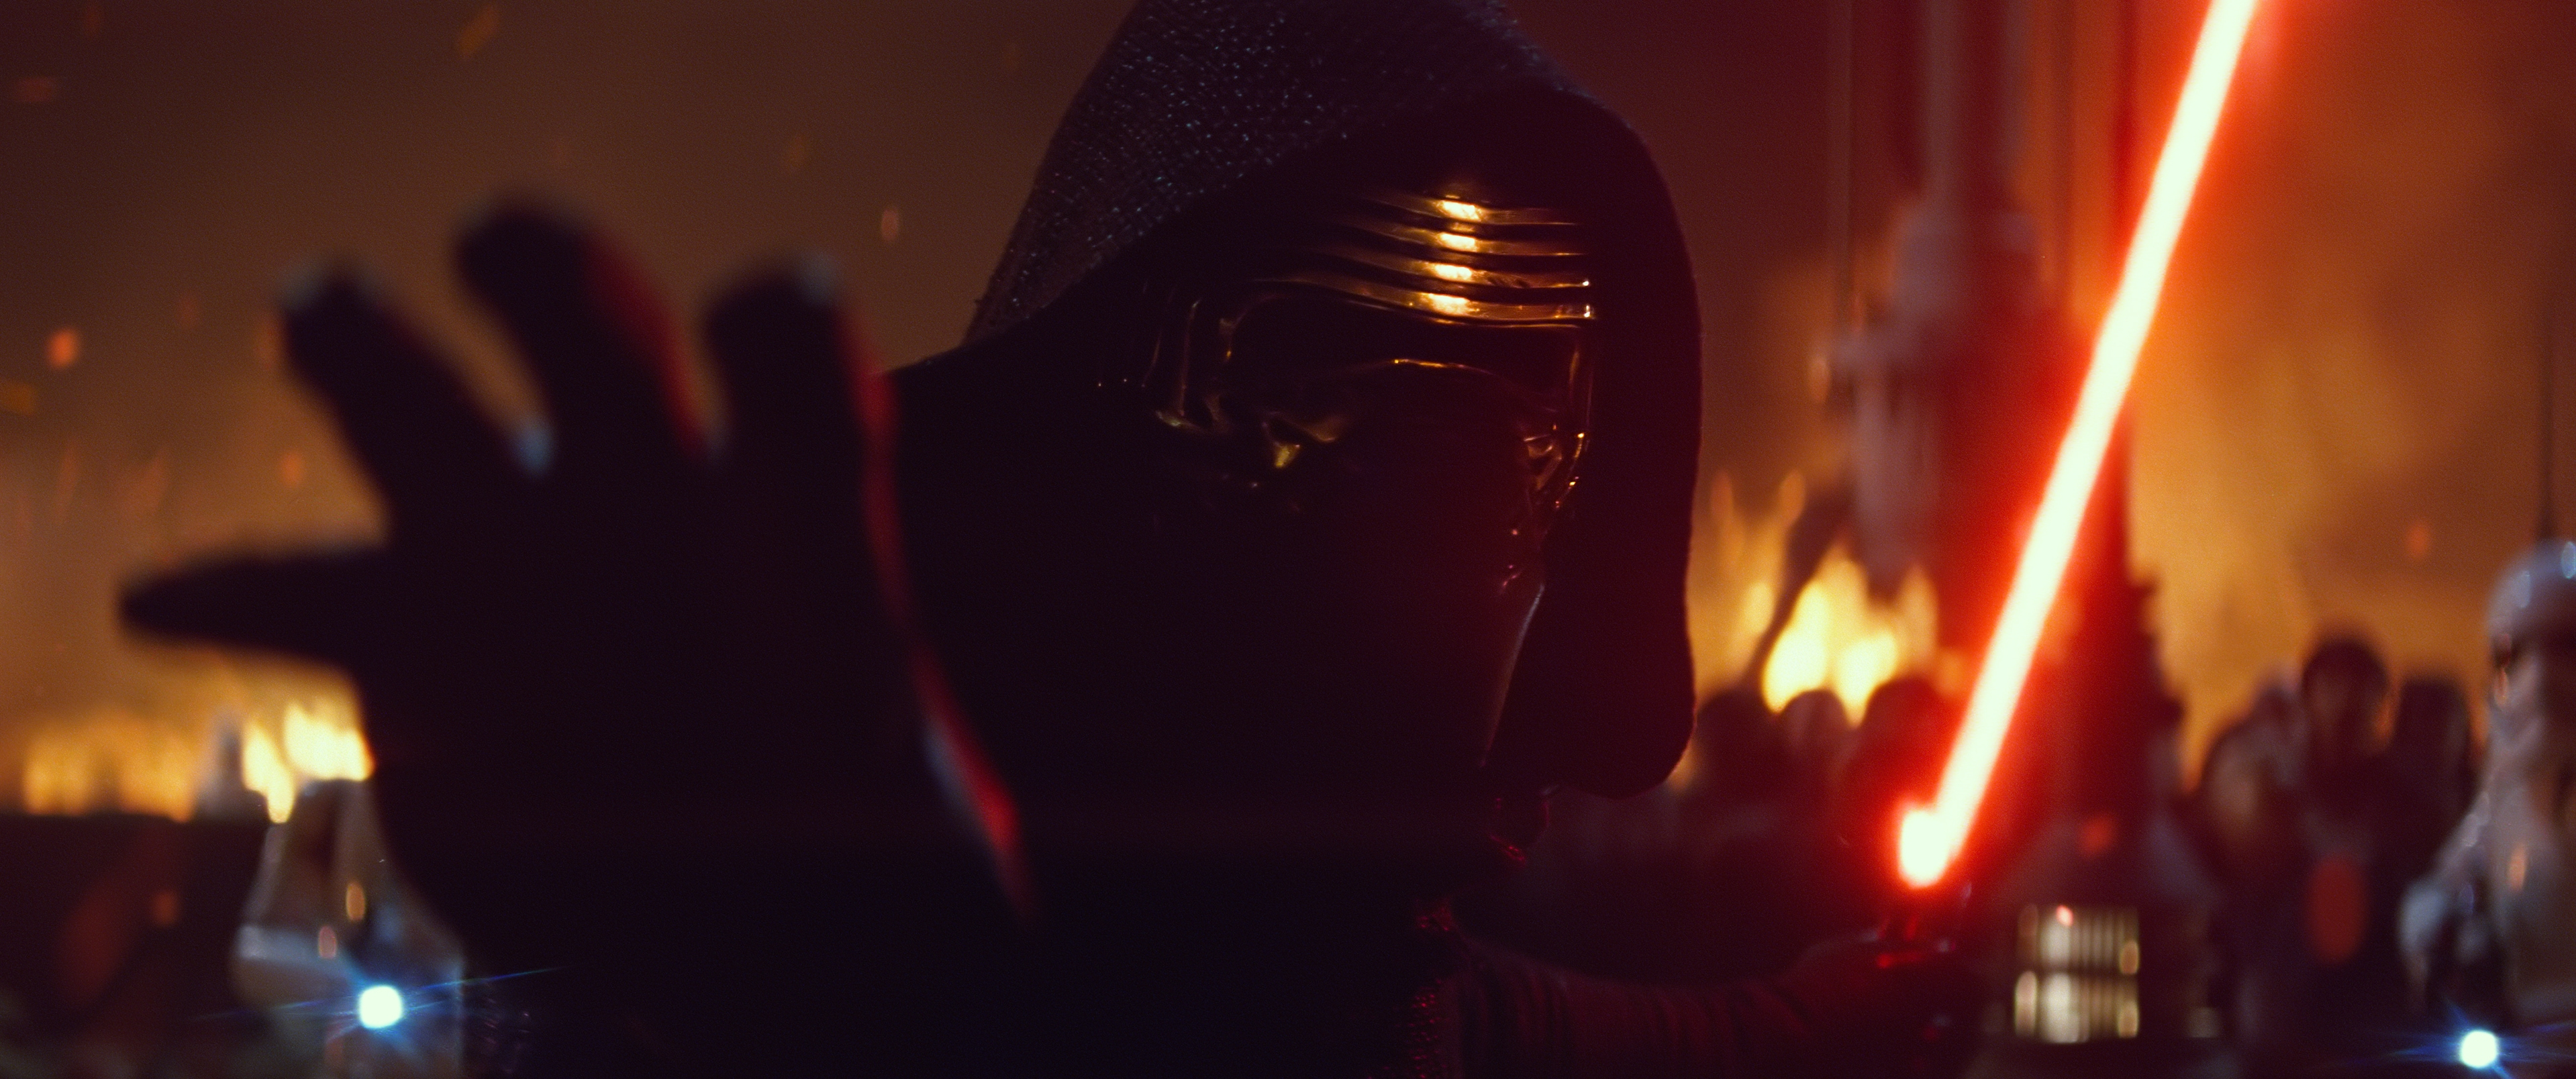 Adam Driver as Kylo Ren using the force